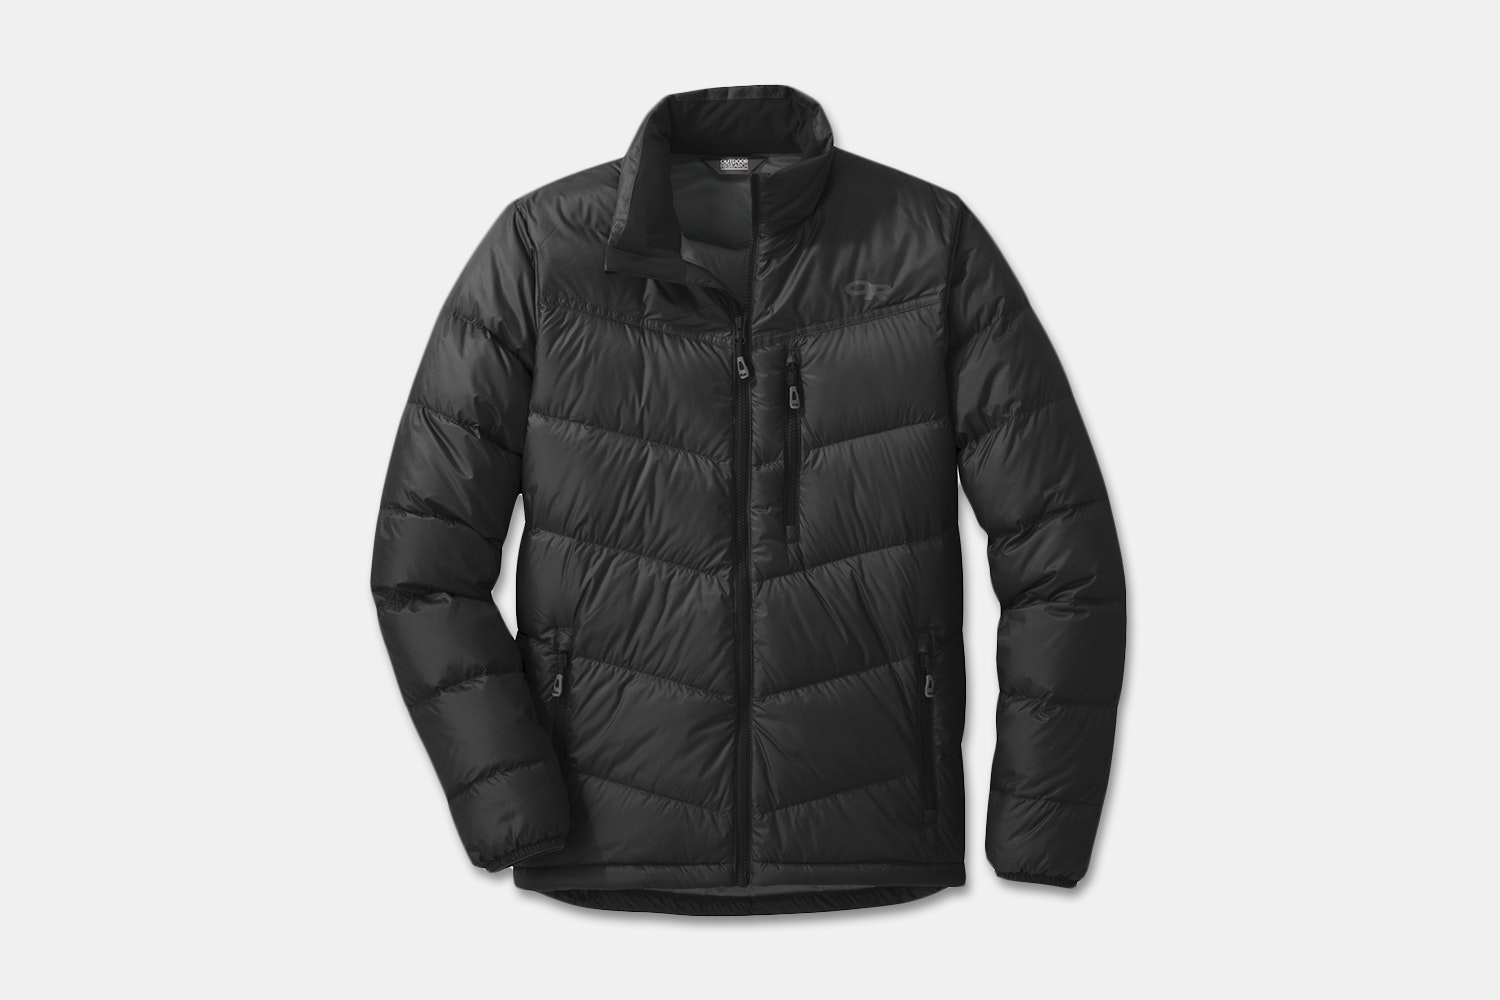 Men's – Jacket – Black